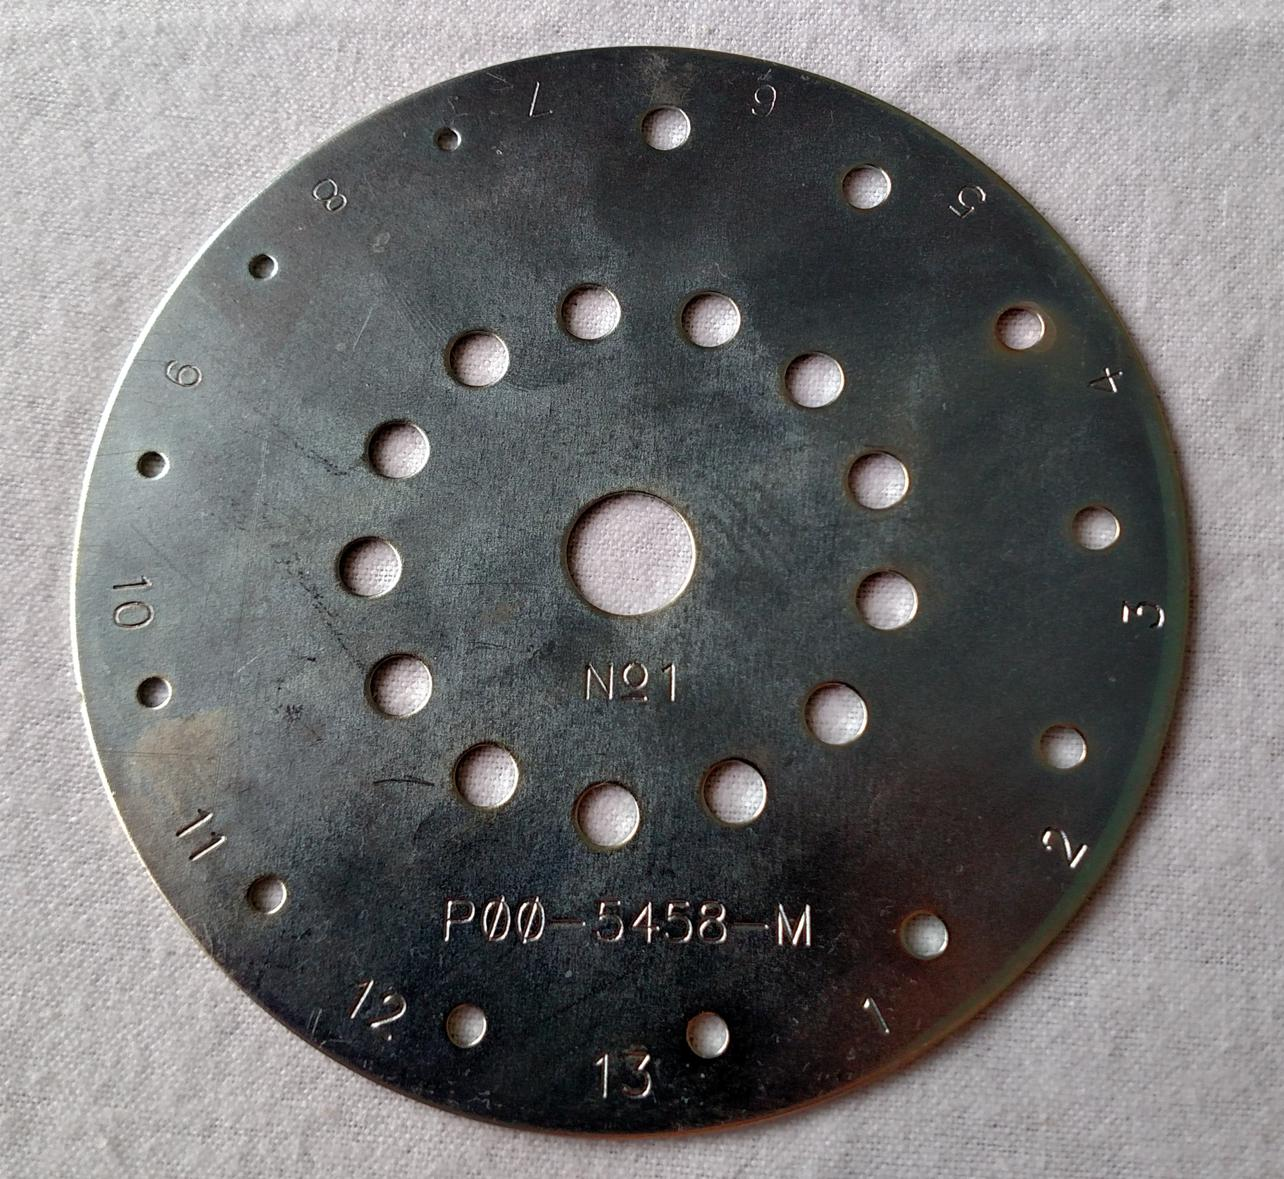 POO-5458 Number 1 Metal Seed Plate for Cole Planet Junior